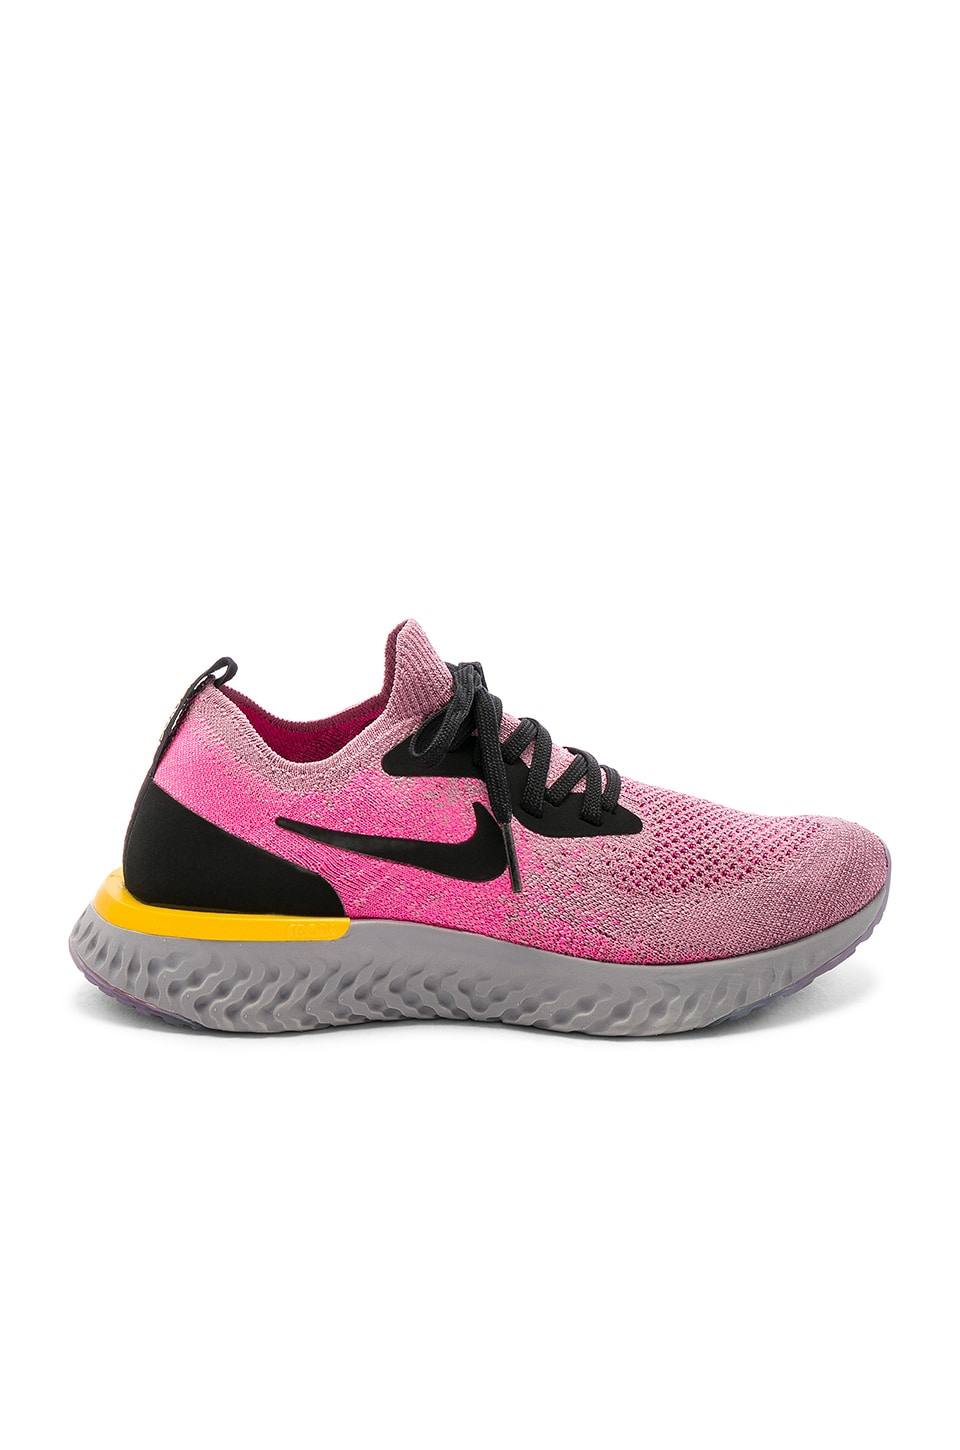 Nike Epic React Flyknit Sneaker in Plum Dust, Black & Pink Blast